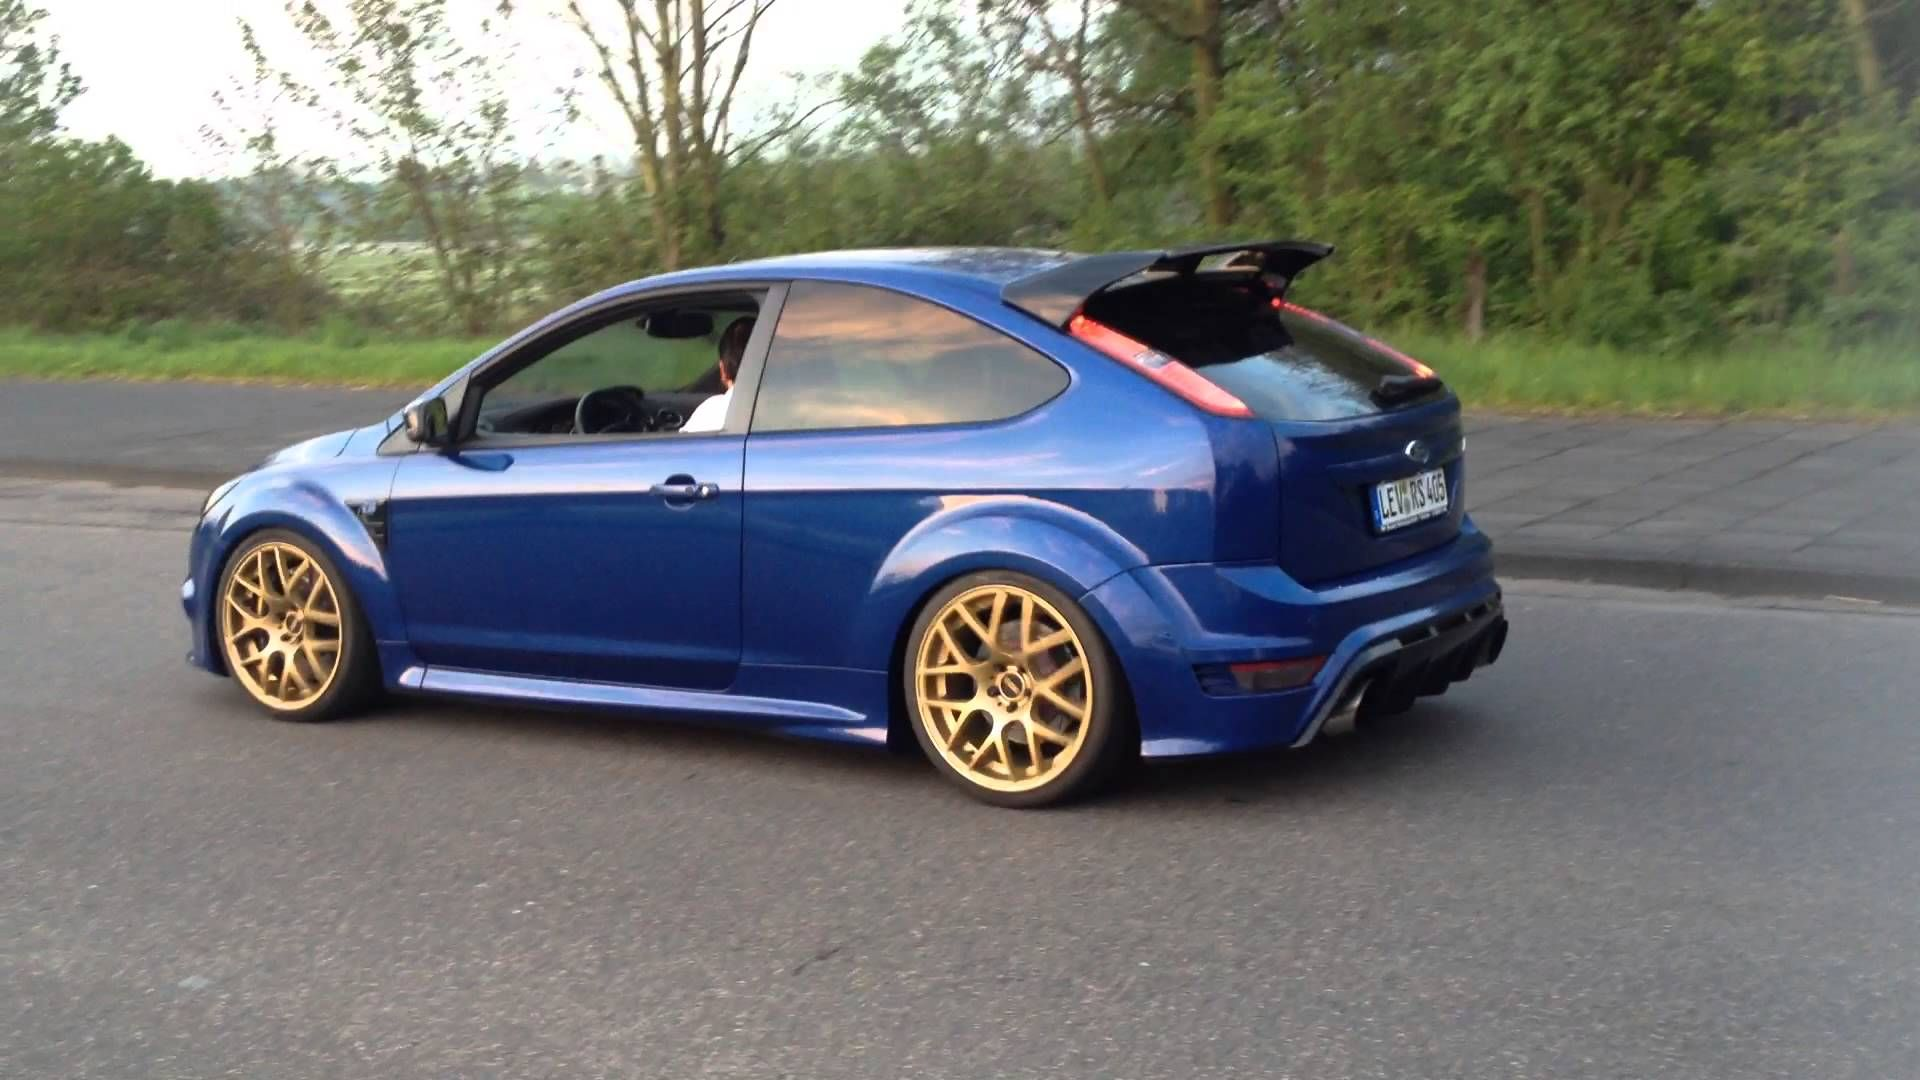 Ford Focus Rs Stage 4 Milltek Sound Youtube Ford Focus Ford Focus Rs Ford Focus Hatchback